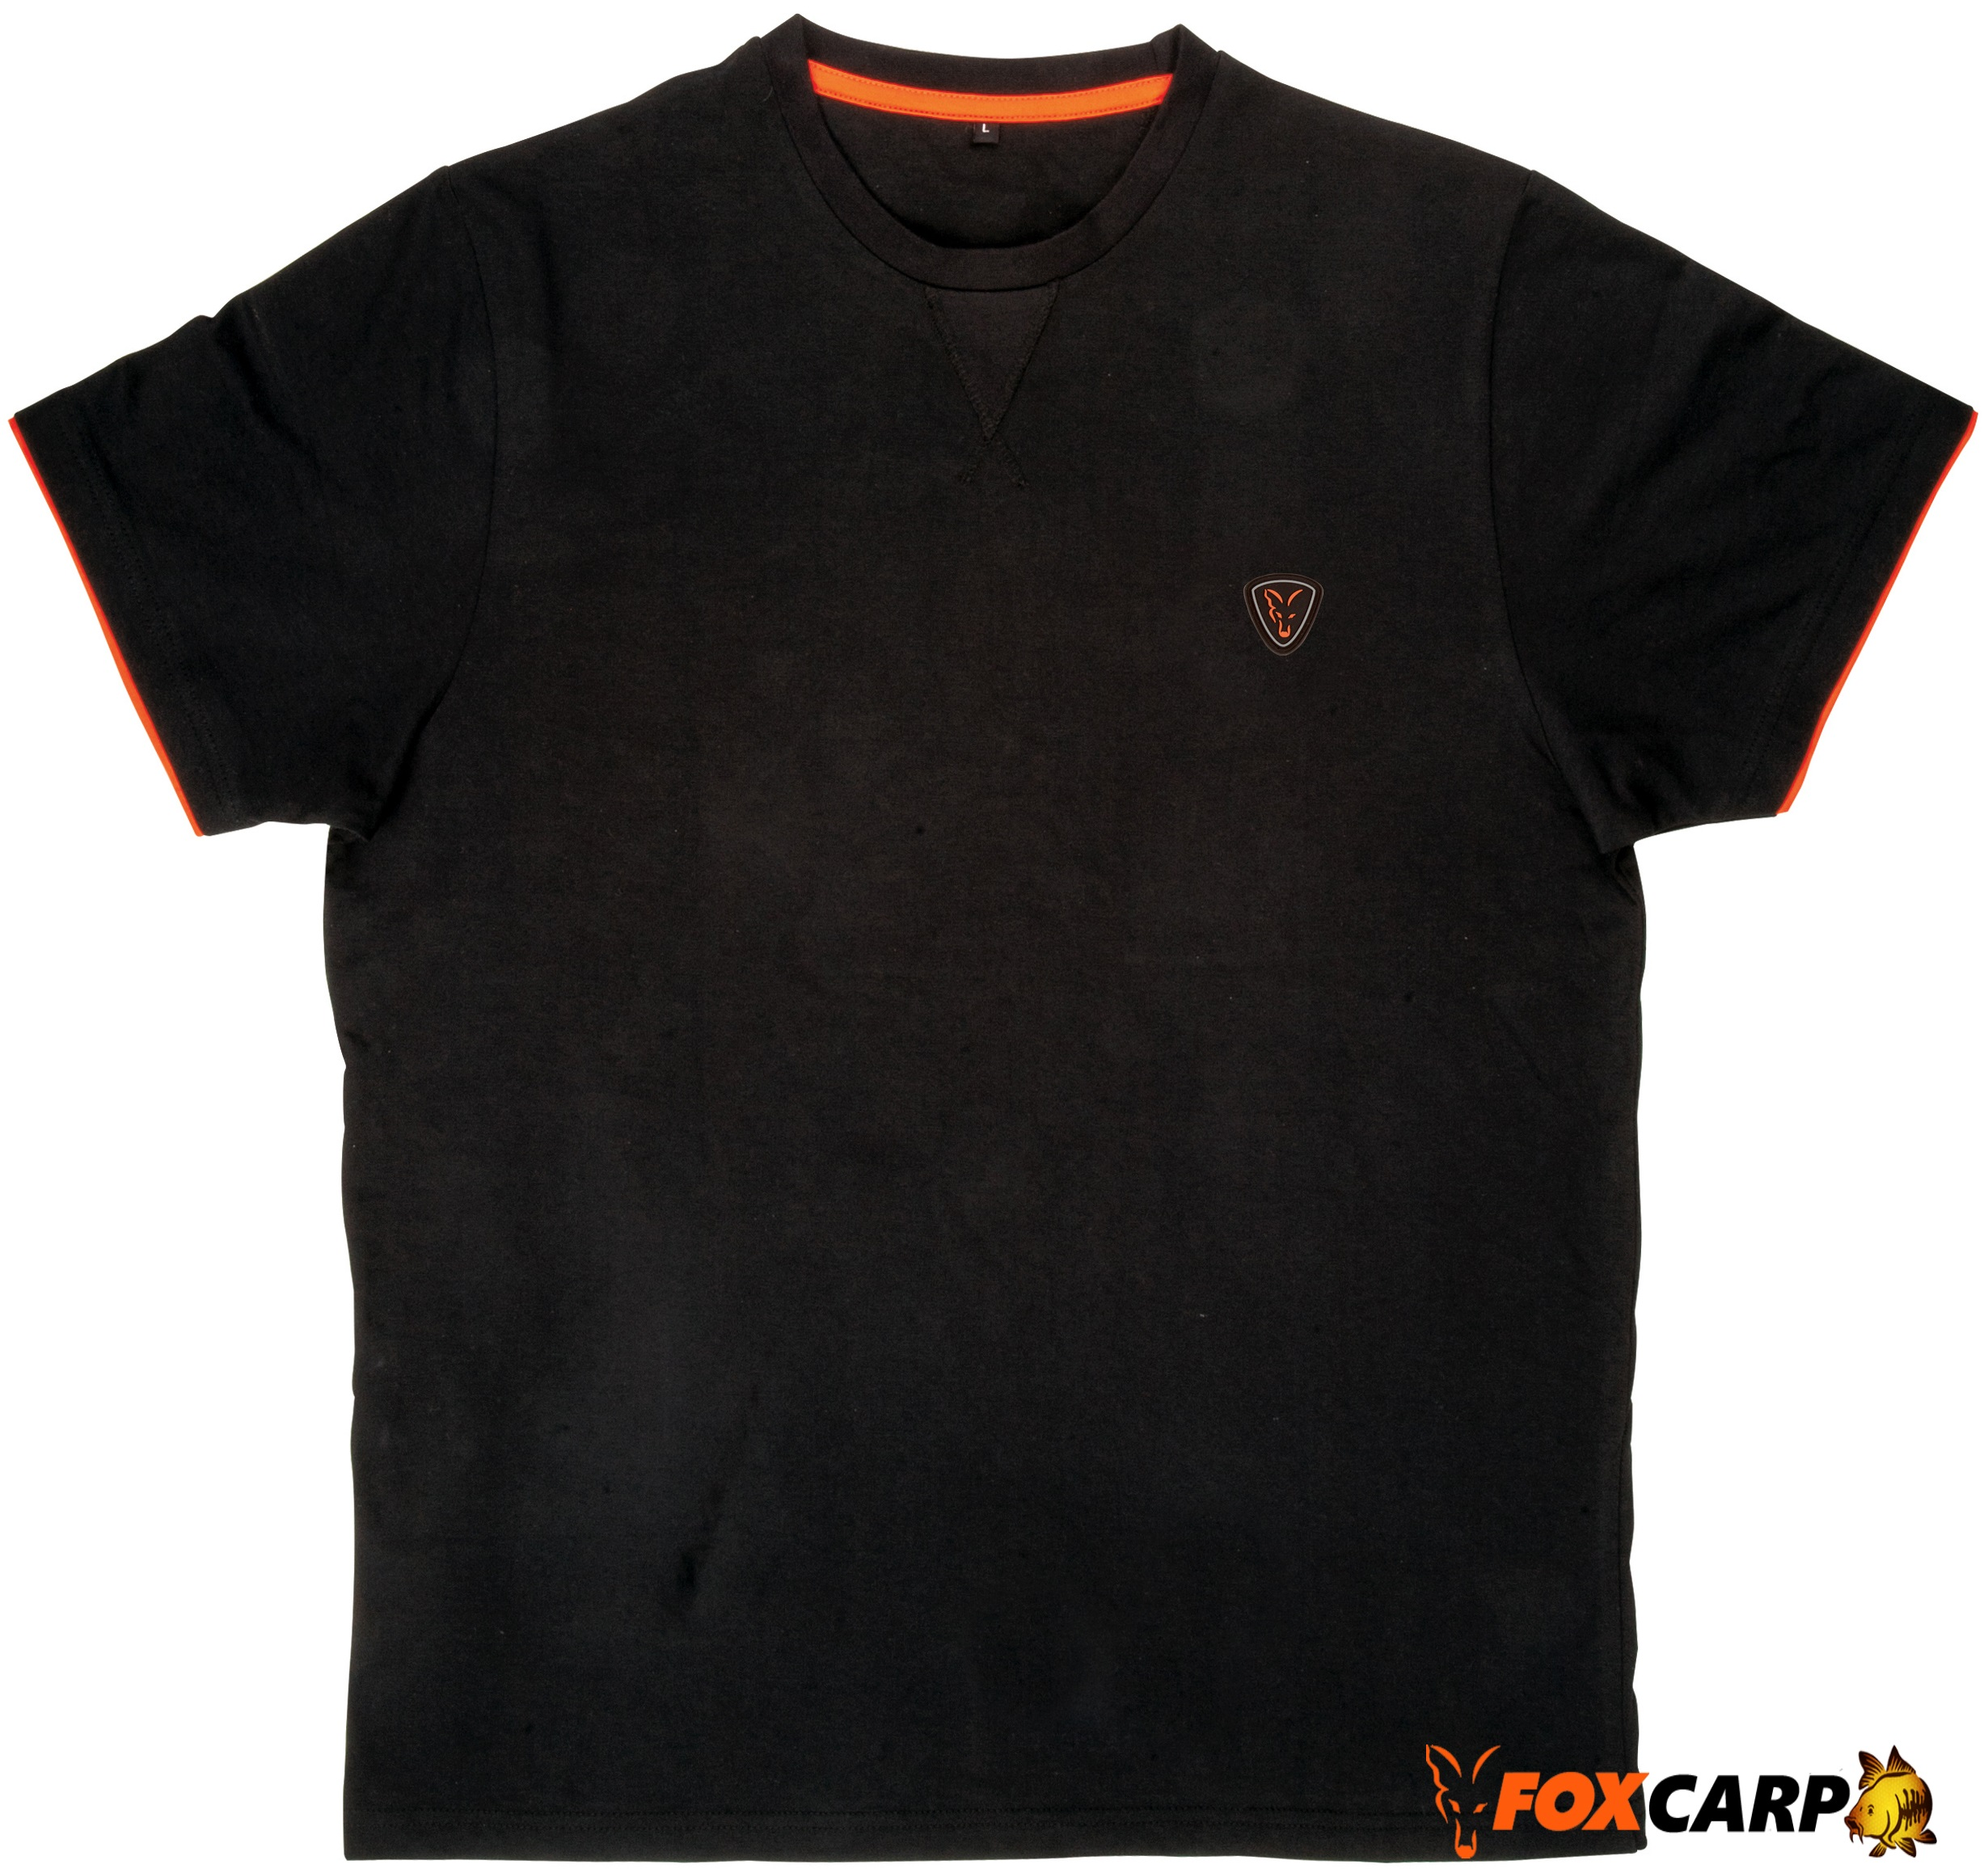 Fox футболка Black Orange Brushed Cotton